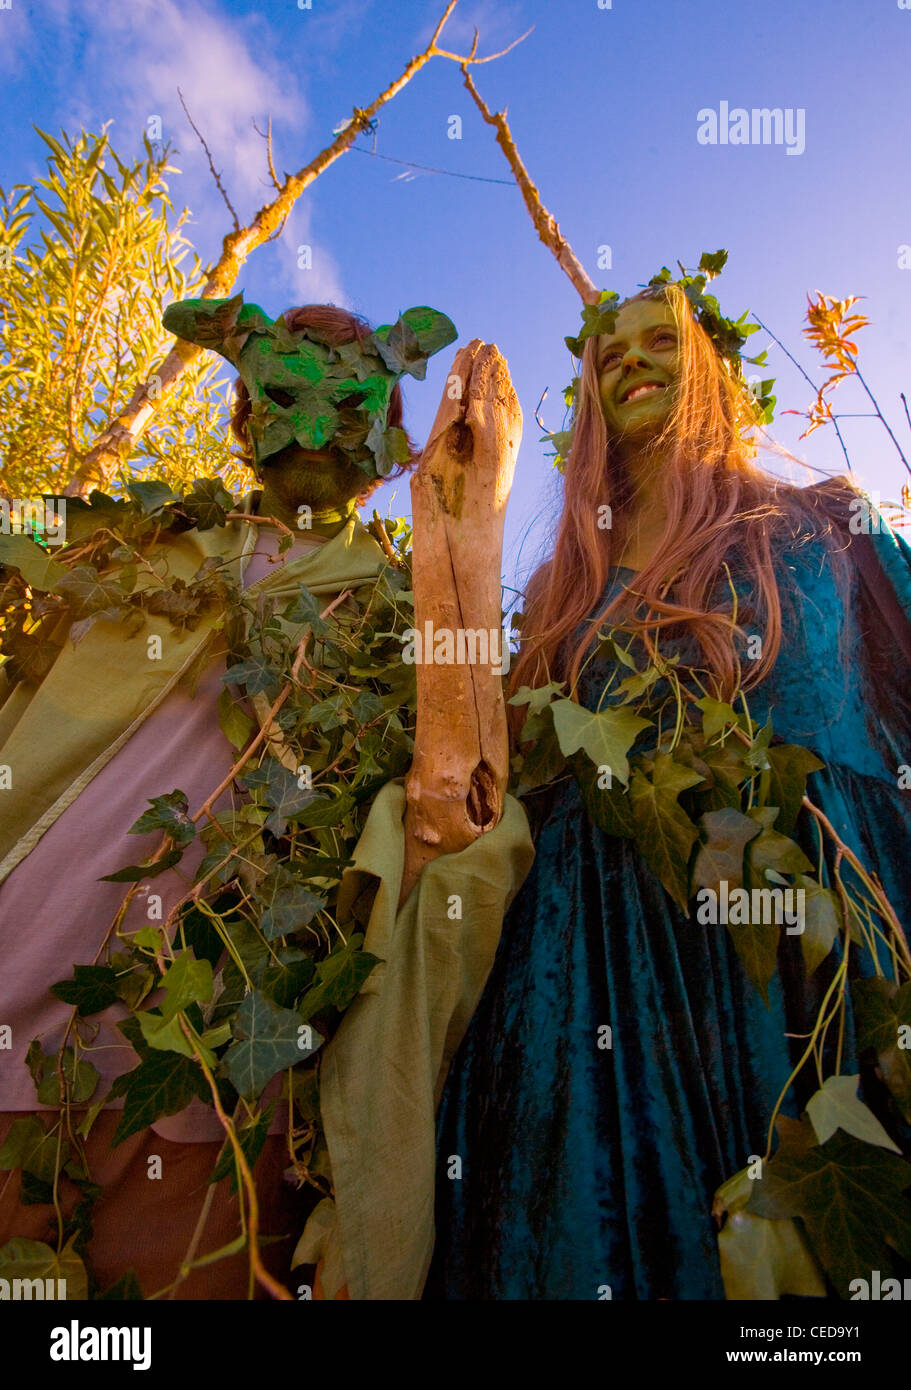 Pagan Green Man Goddess Fertility Rites - Stock Image